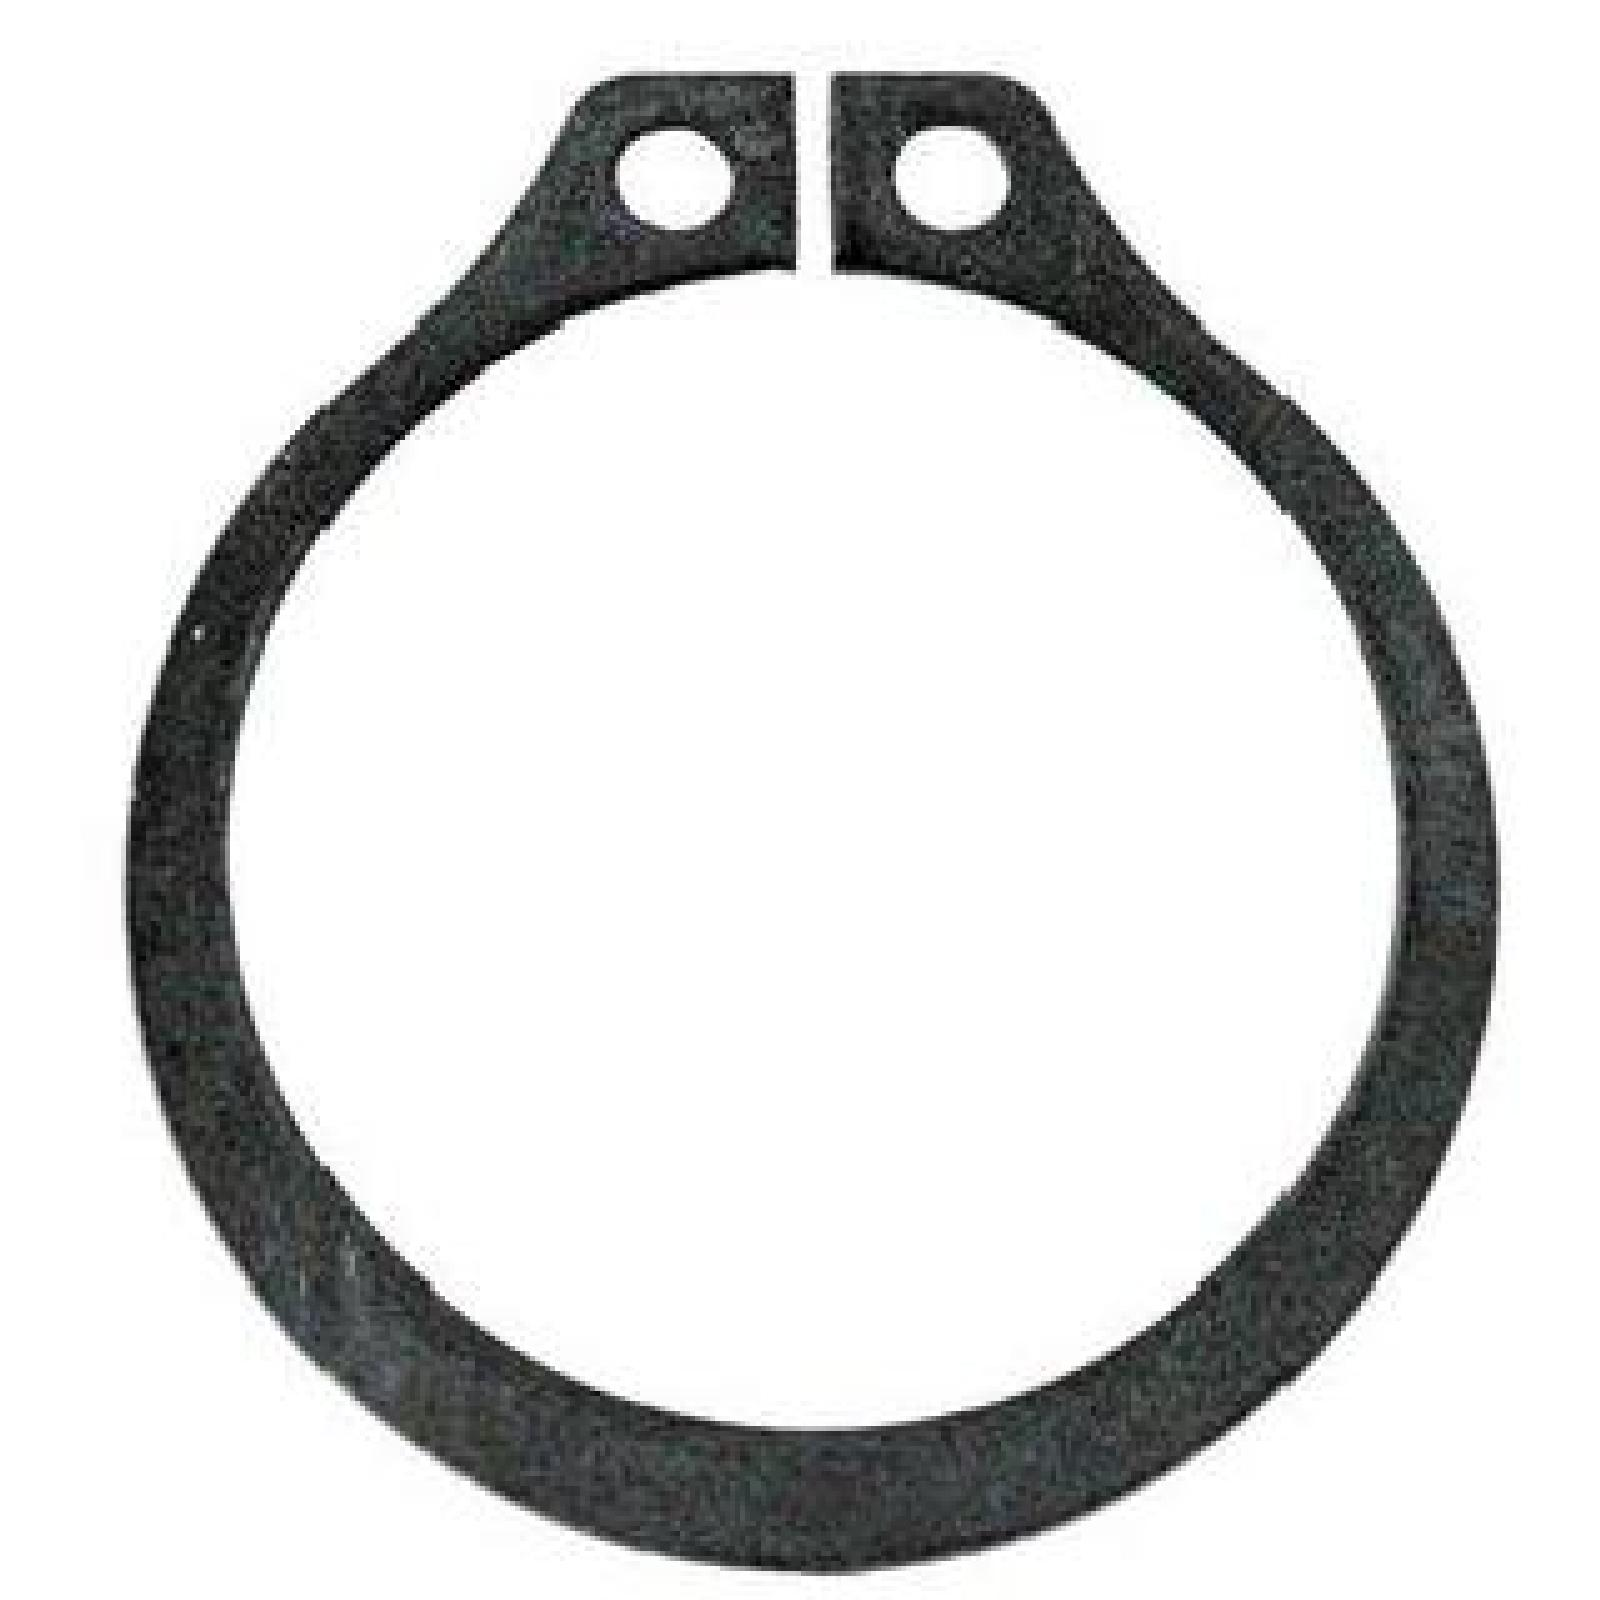 RING SNAP SR 81 13/ part# 63 by Rotary